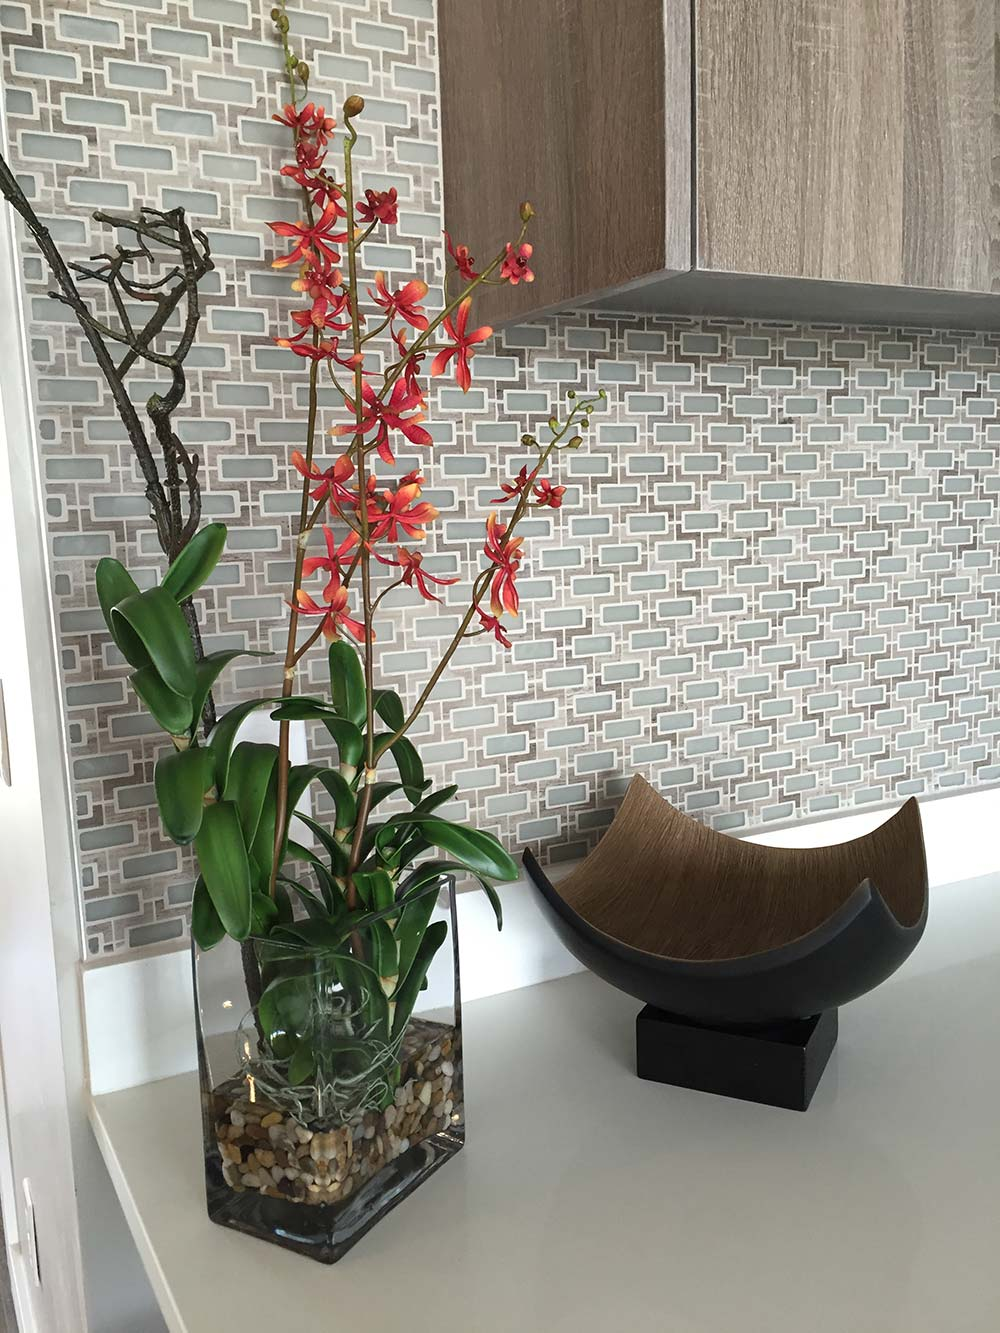 decorative items on kitchen counter